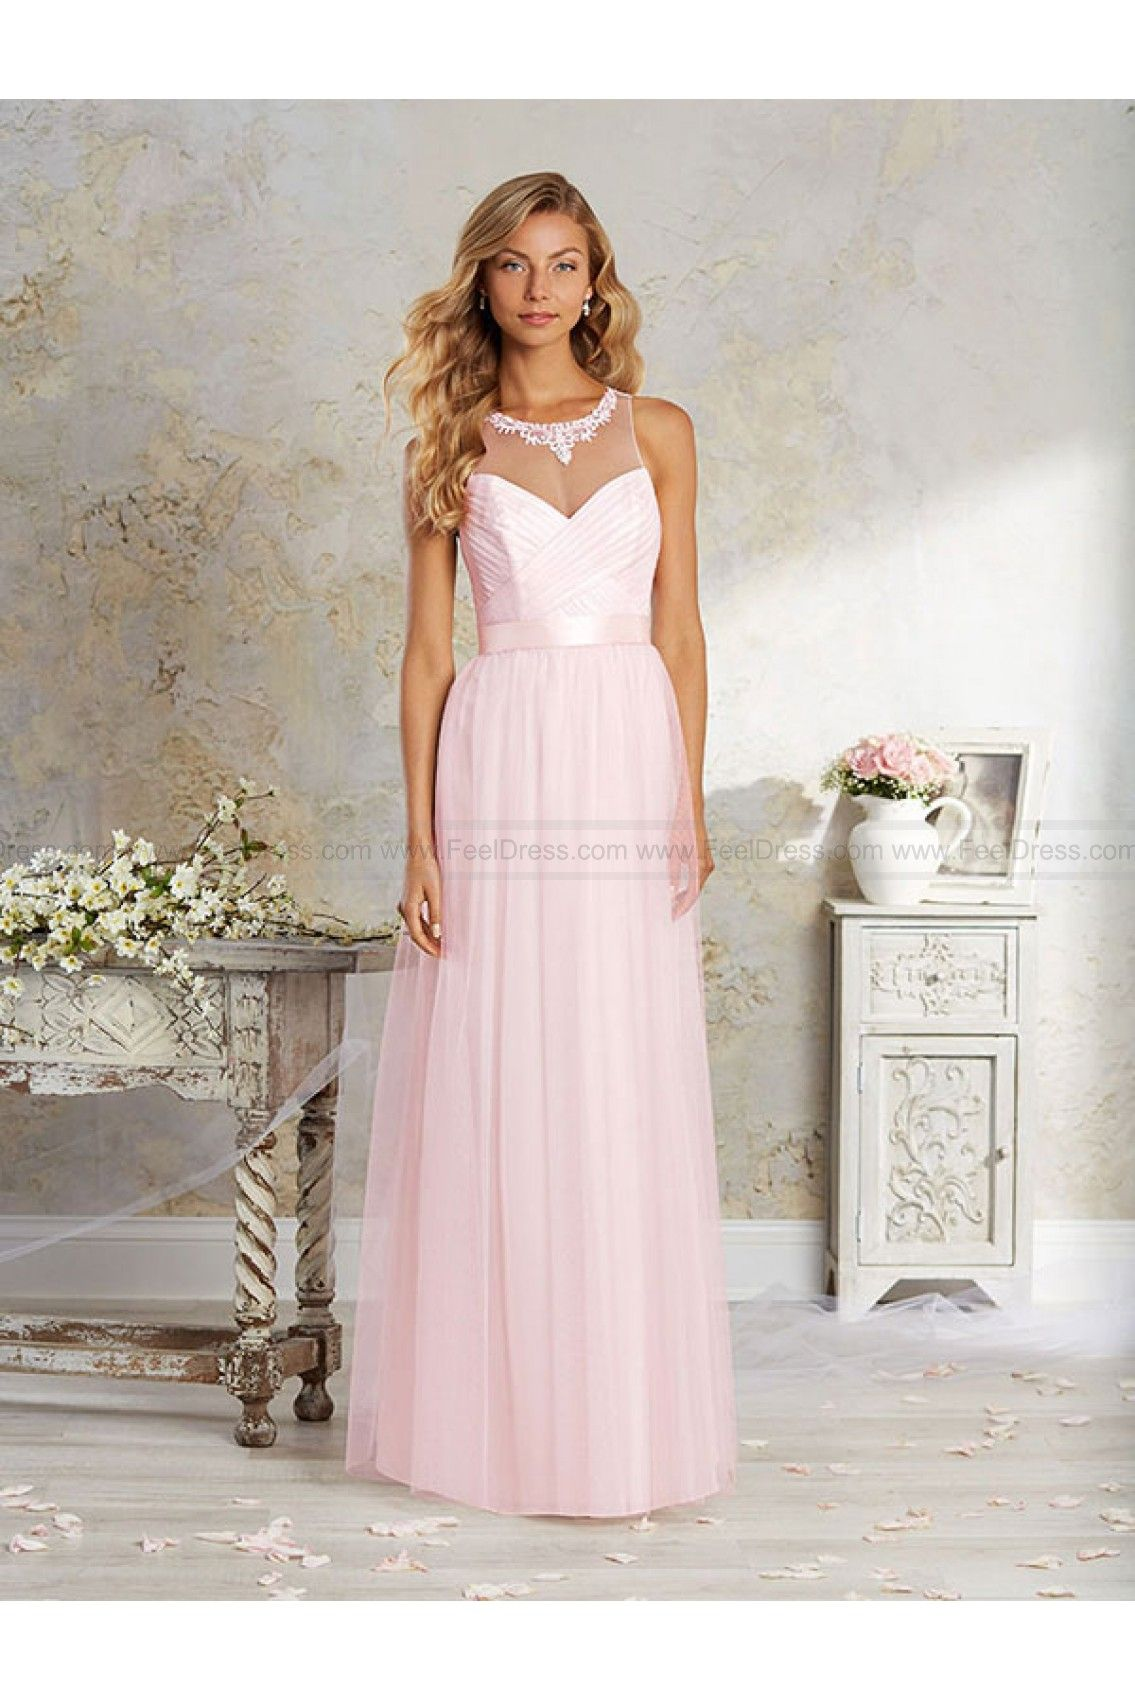 Cinderella wedding dress alfred angelo  Alfred Angelo Bridesmaid Dress Style L New  wedding